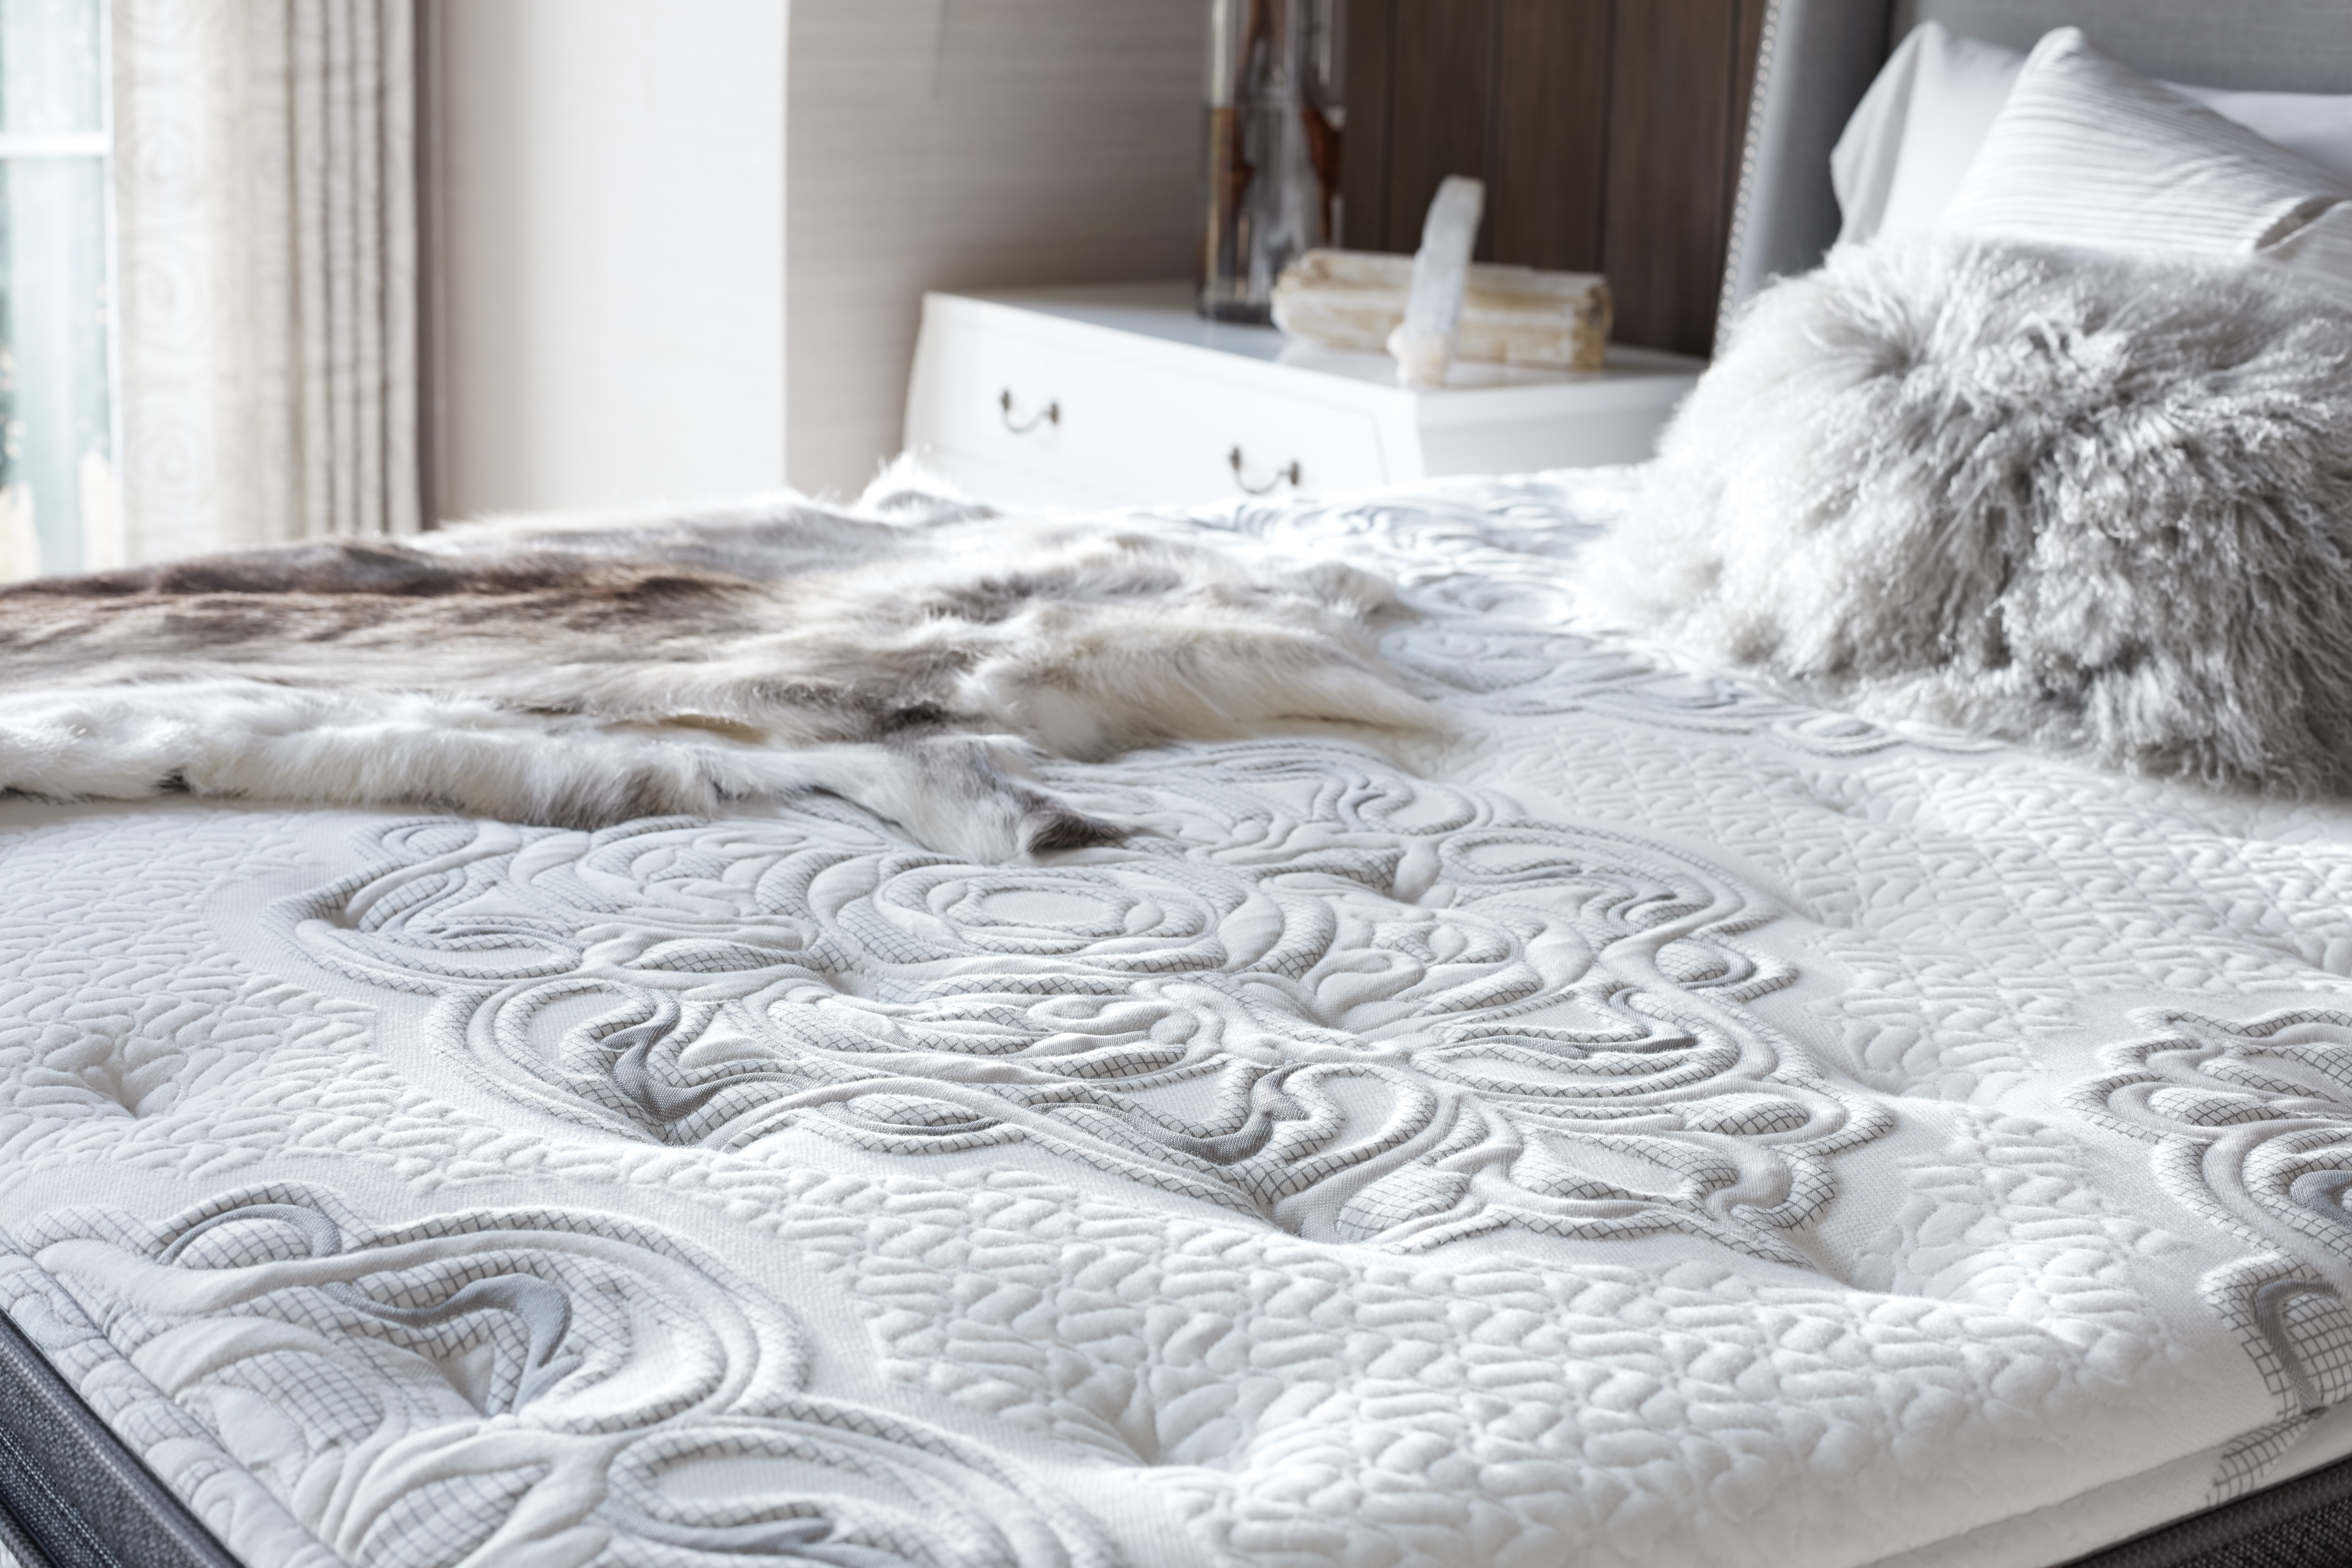 Simmons Hospitality Bedding launched its Beautyrest Black hybrid bed with a zip-off top later in 2014.